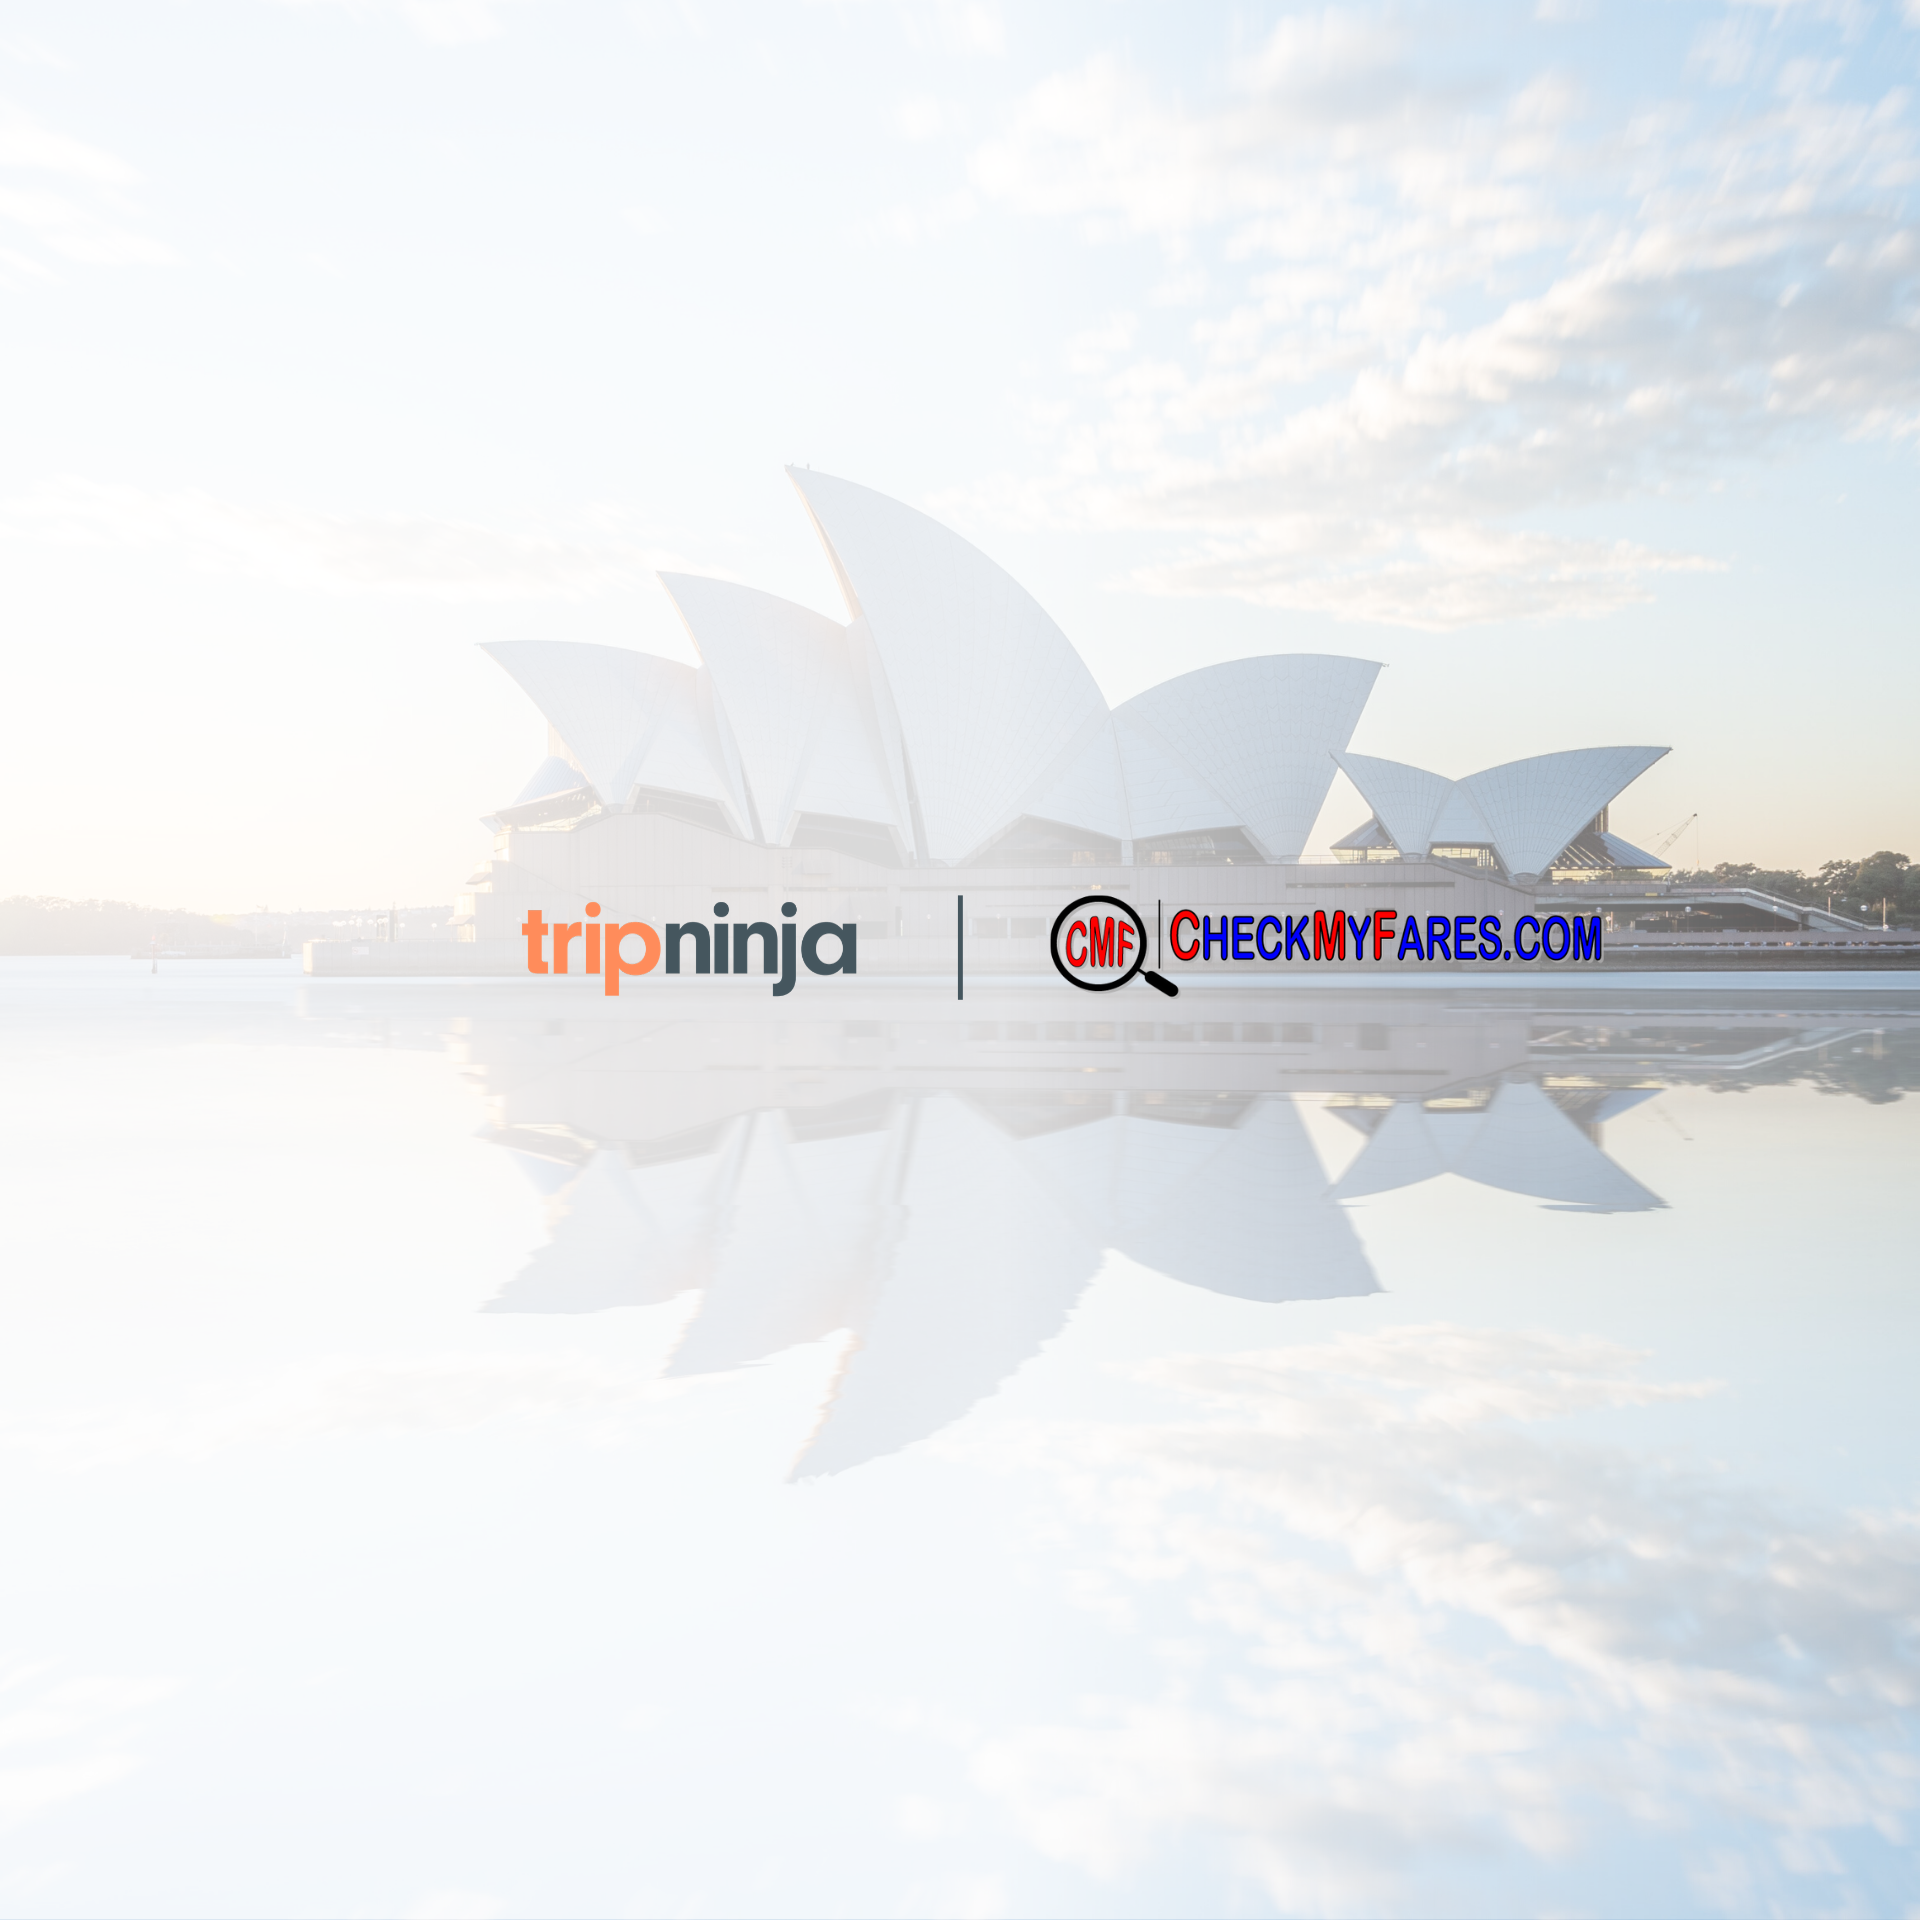 Trip Ninja and CheckMyFares today announce the launch of their strategic partnership and the integration of Trip Ninja's innovative FareStructure technology with CheckMyFare's advanced and user-friendly flight booking interface.